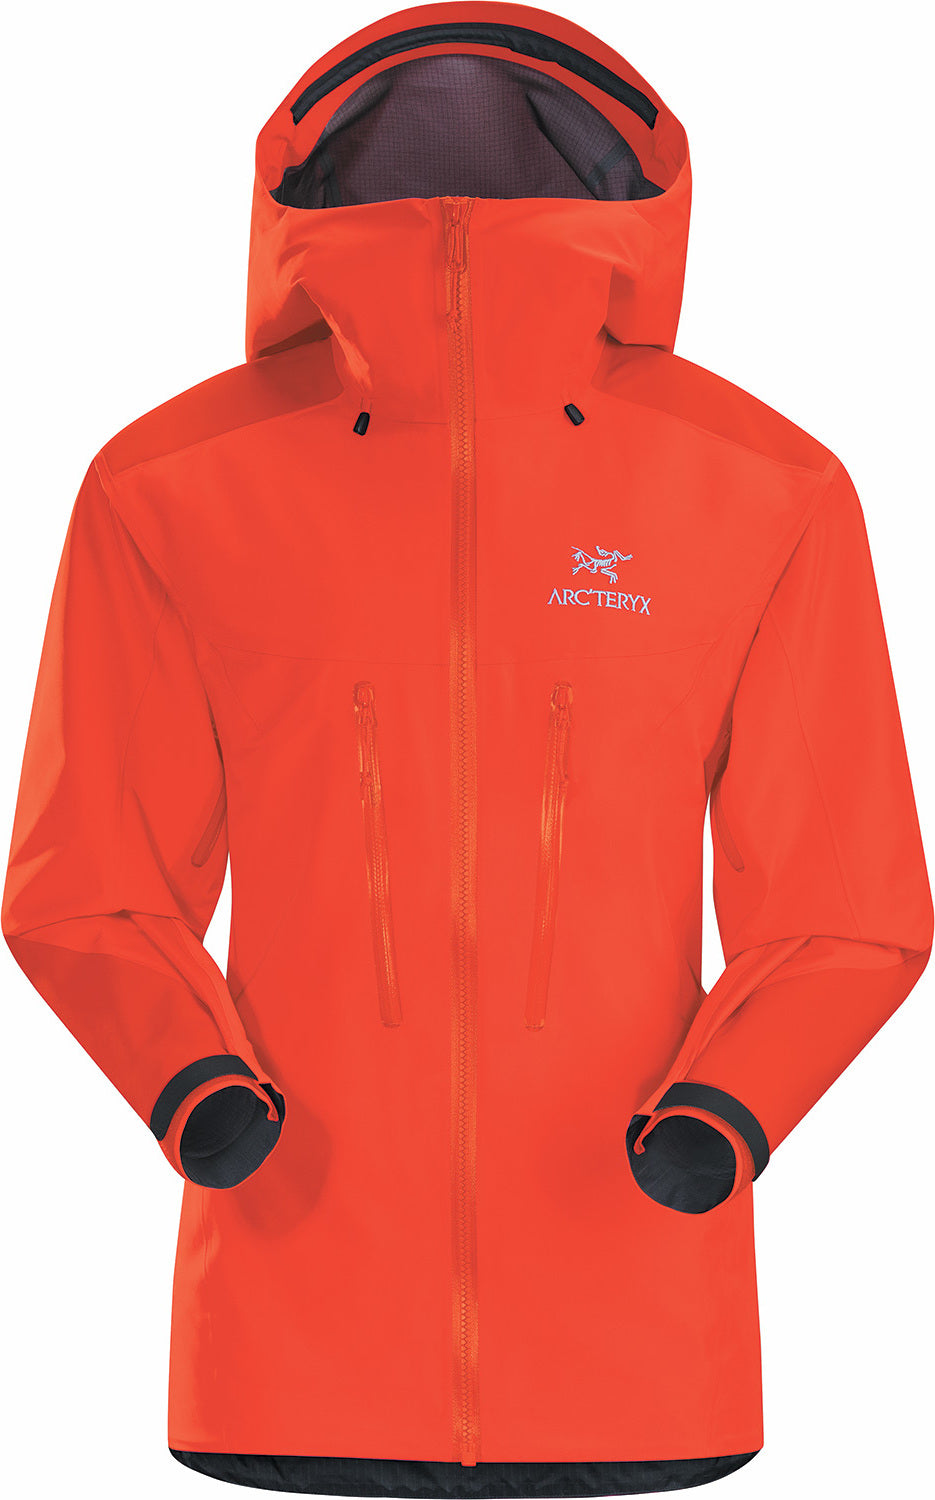 de3420f557e Arc teryx Alpha Ar Jacket - Women s